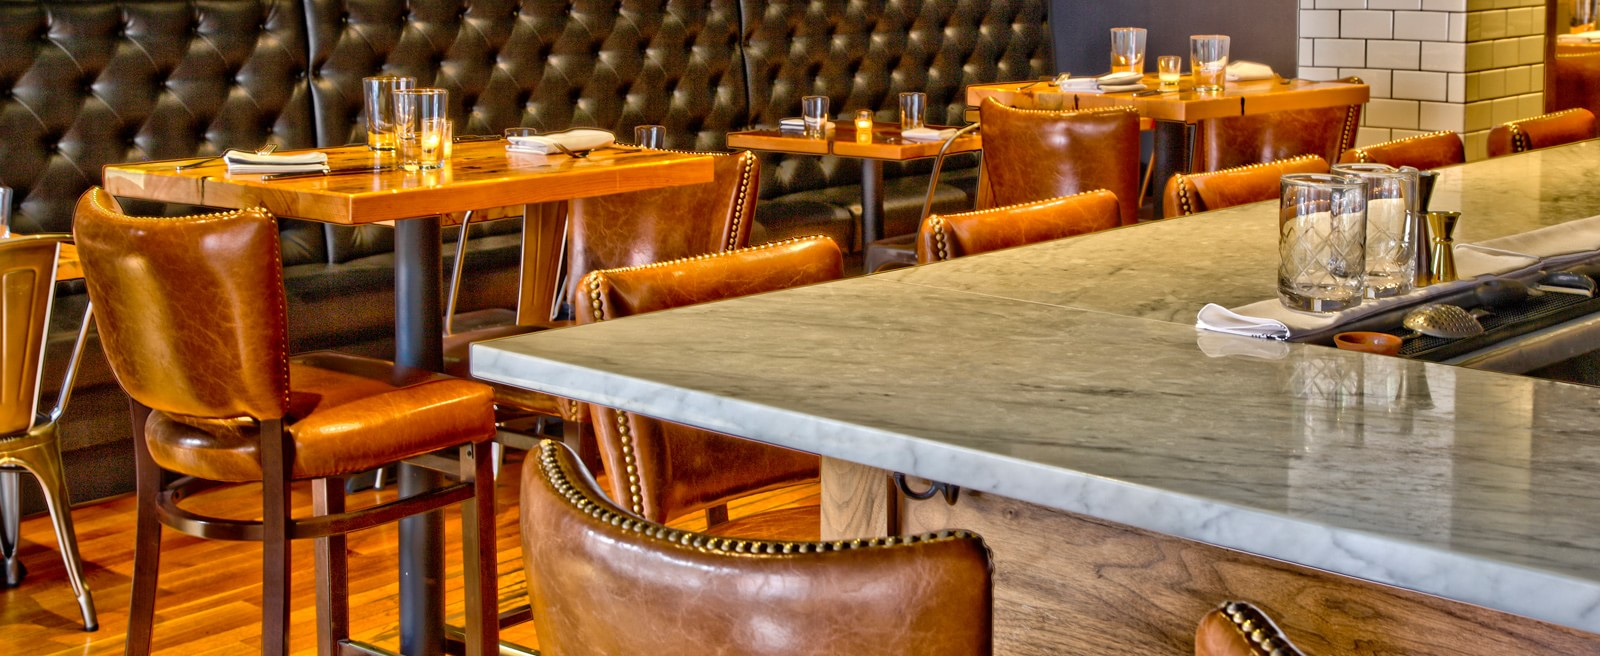 Restaurant and Hospitality Furniture, Harmony Contract Furniture